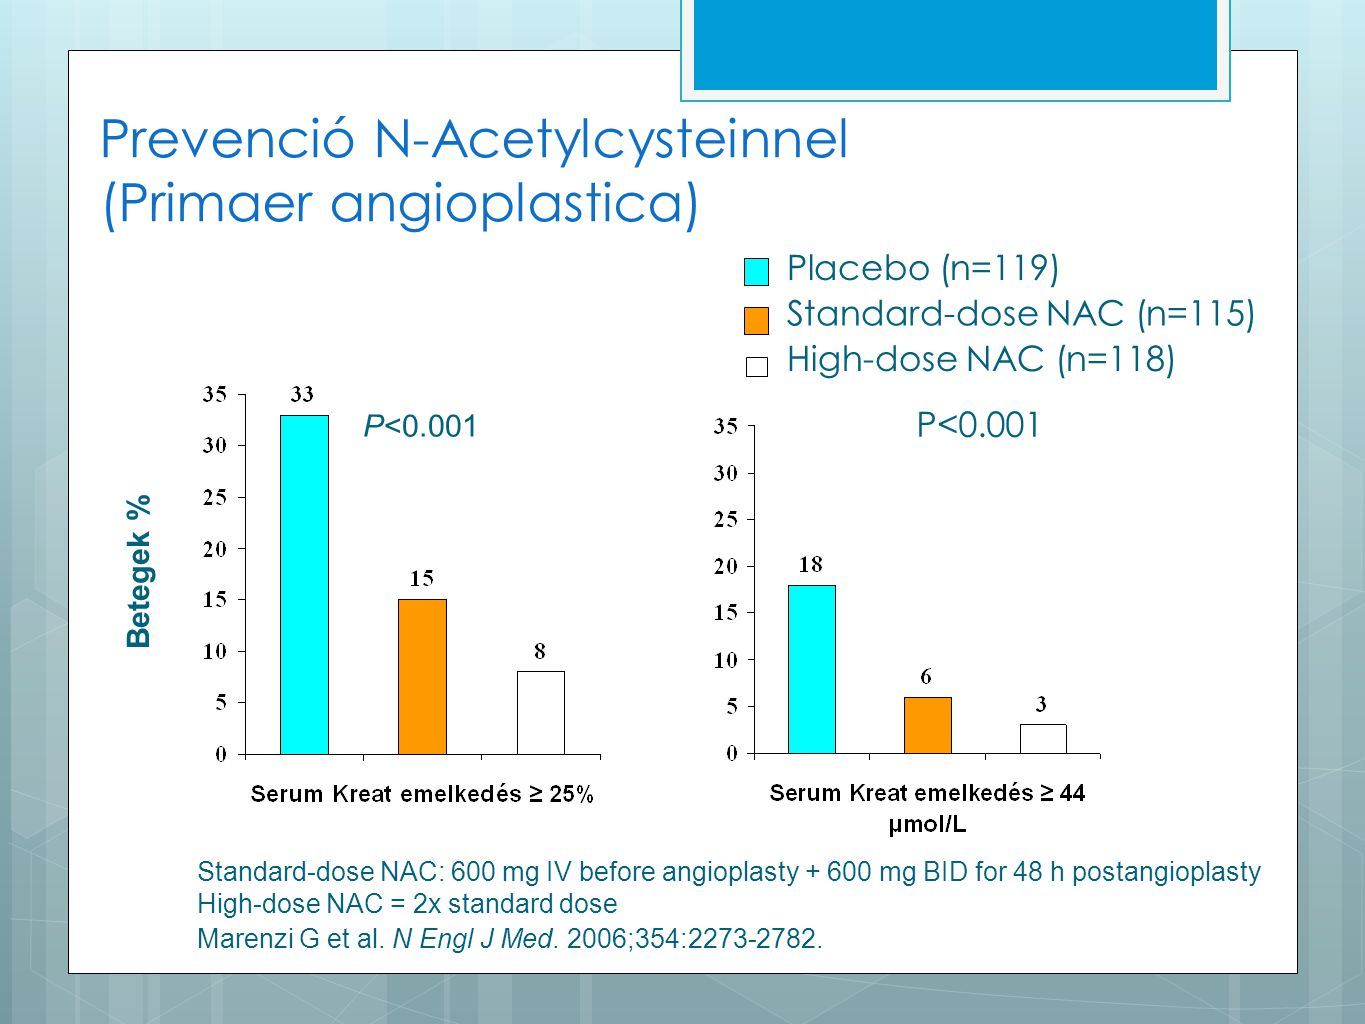 Prevenció N-Acetylcysteinnel (Primaer angioplastica) Standard-dose NAC: 600 mg IV before angioplasty + 600 mg BID for 48 h postangioplasty High-dose N